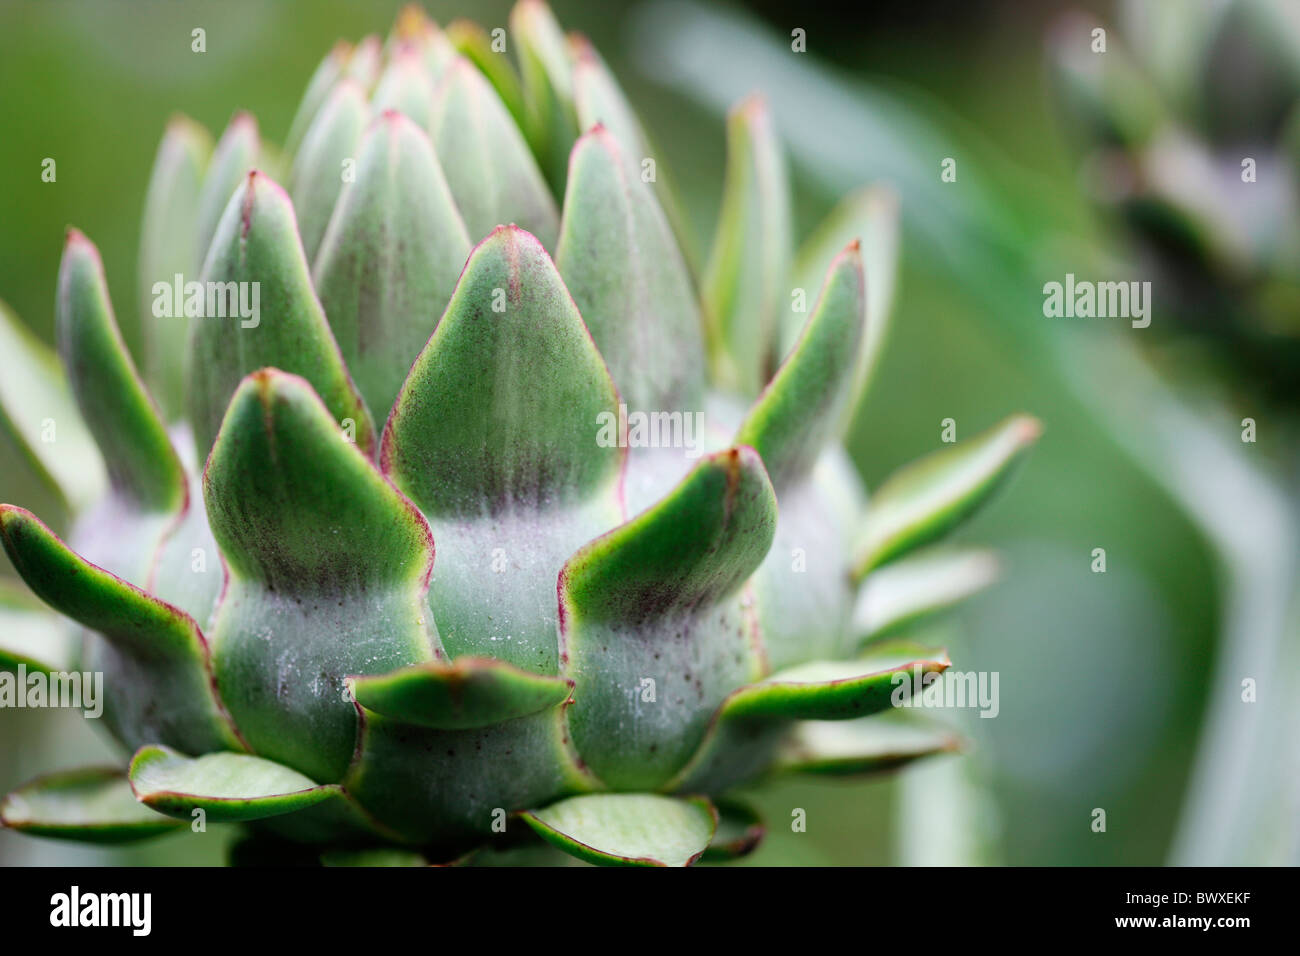 sturdy globe artichoke plant growing in the garden Jane-Ann Butler Photography JABP886 - Stock Image